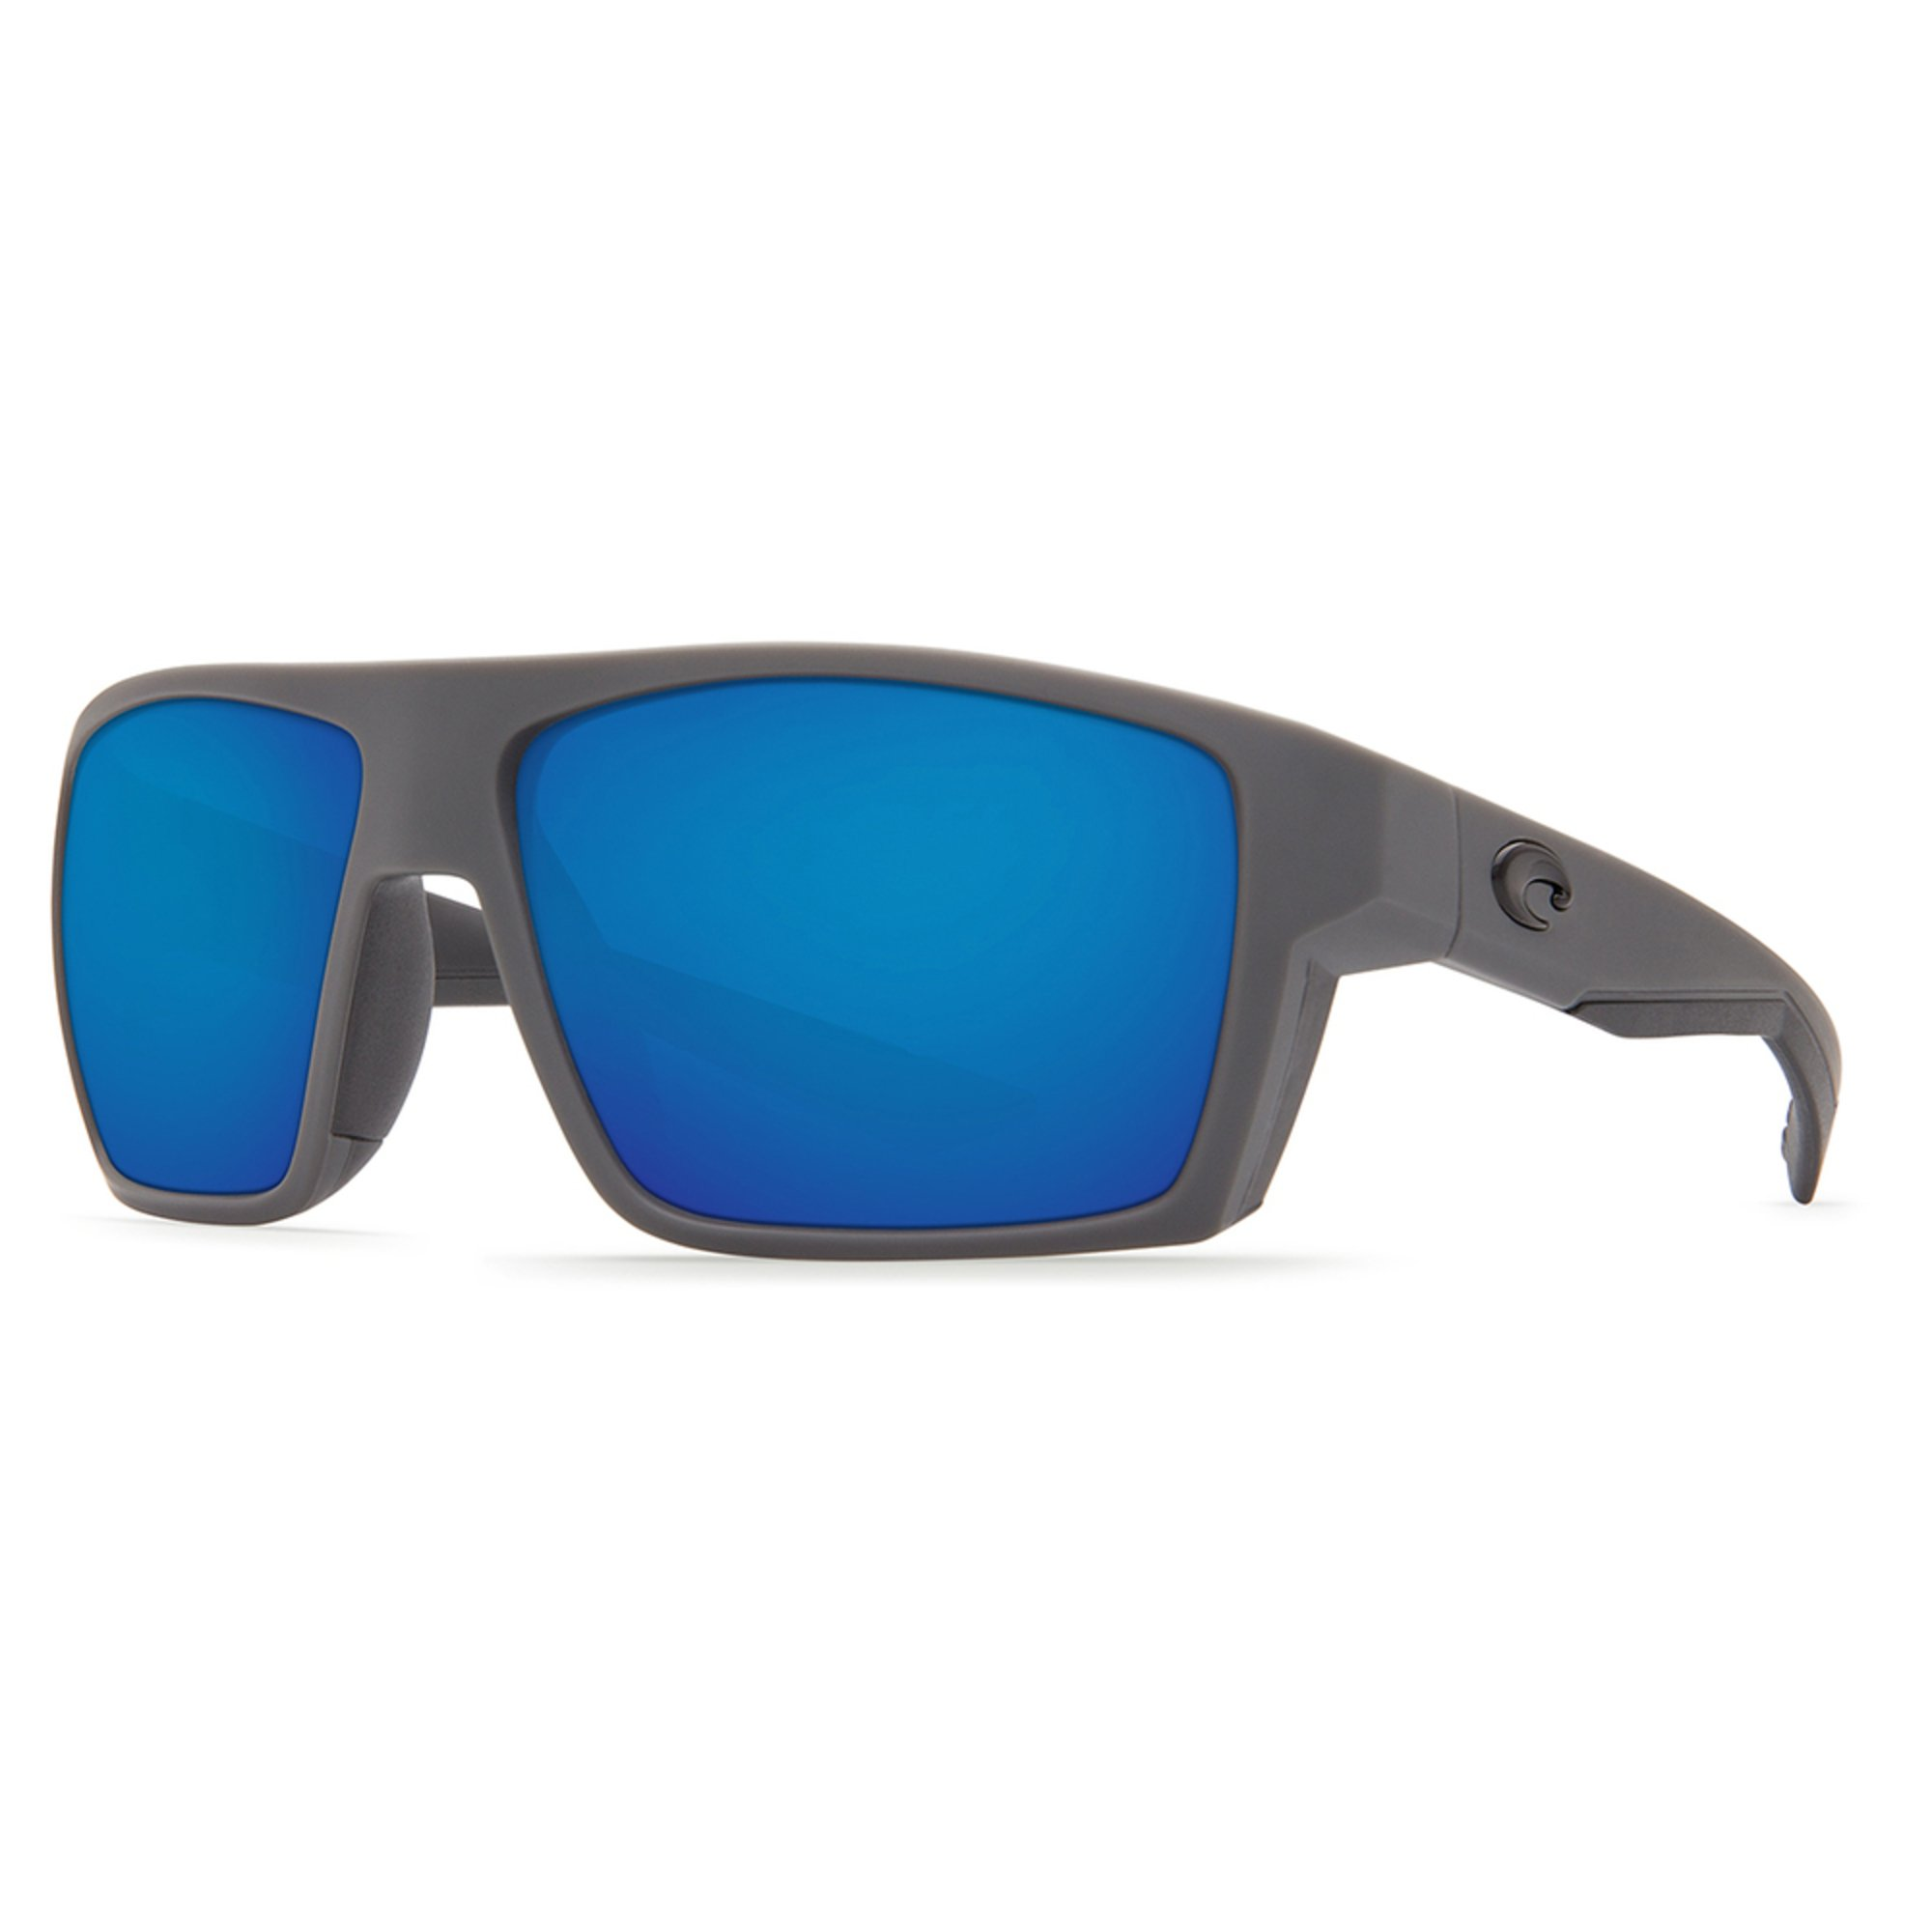 1517d1368b Costa del Mar. Costa Del Mar Men s Polarized Bloke Sunglasses